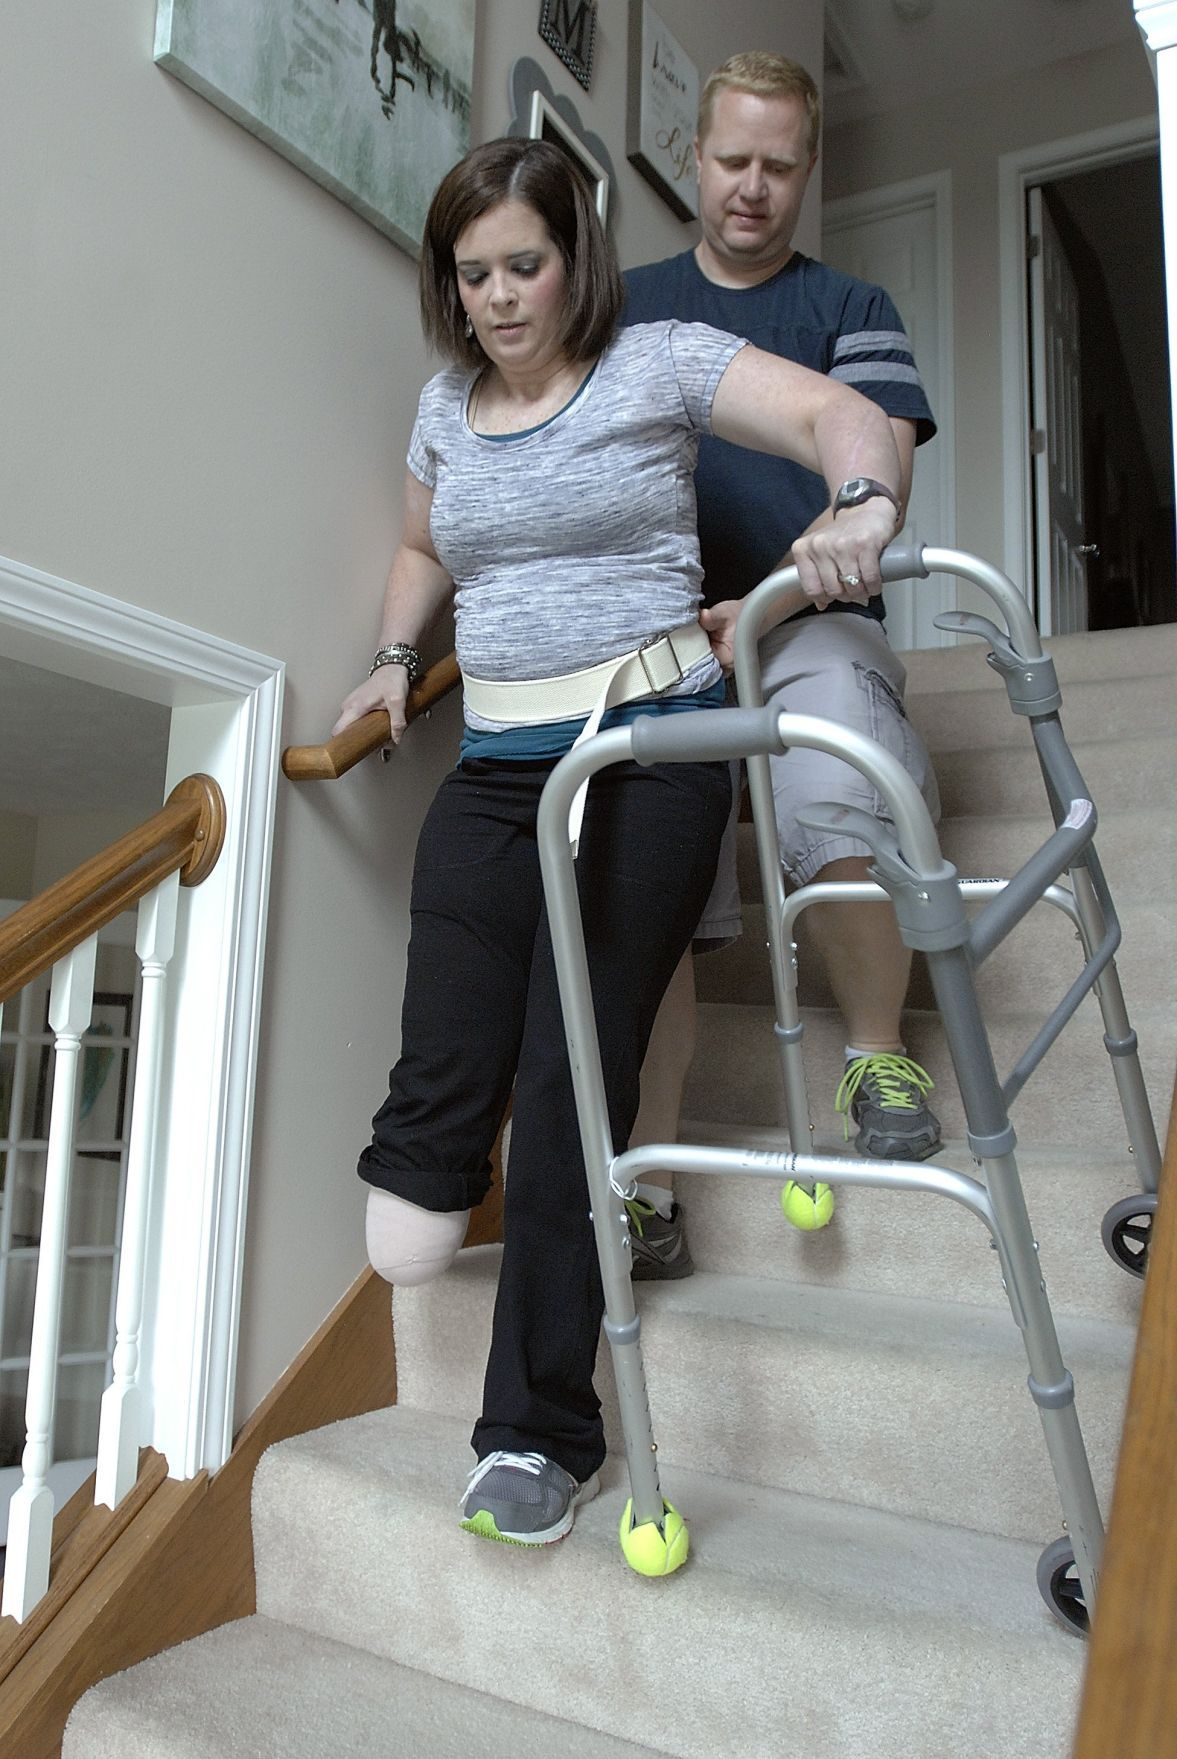 Amputee crutches woman -